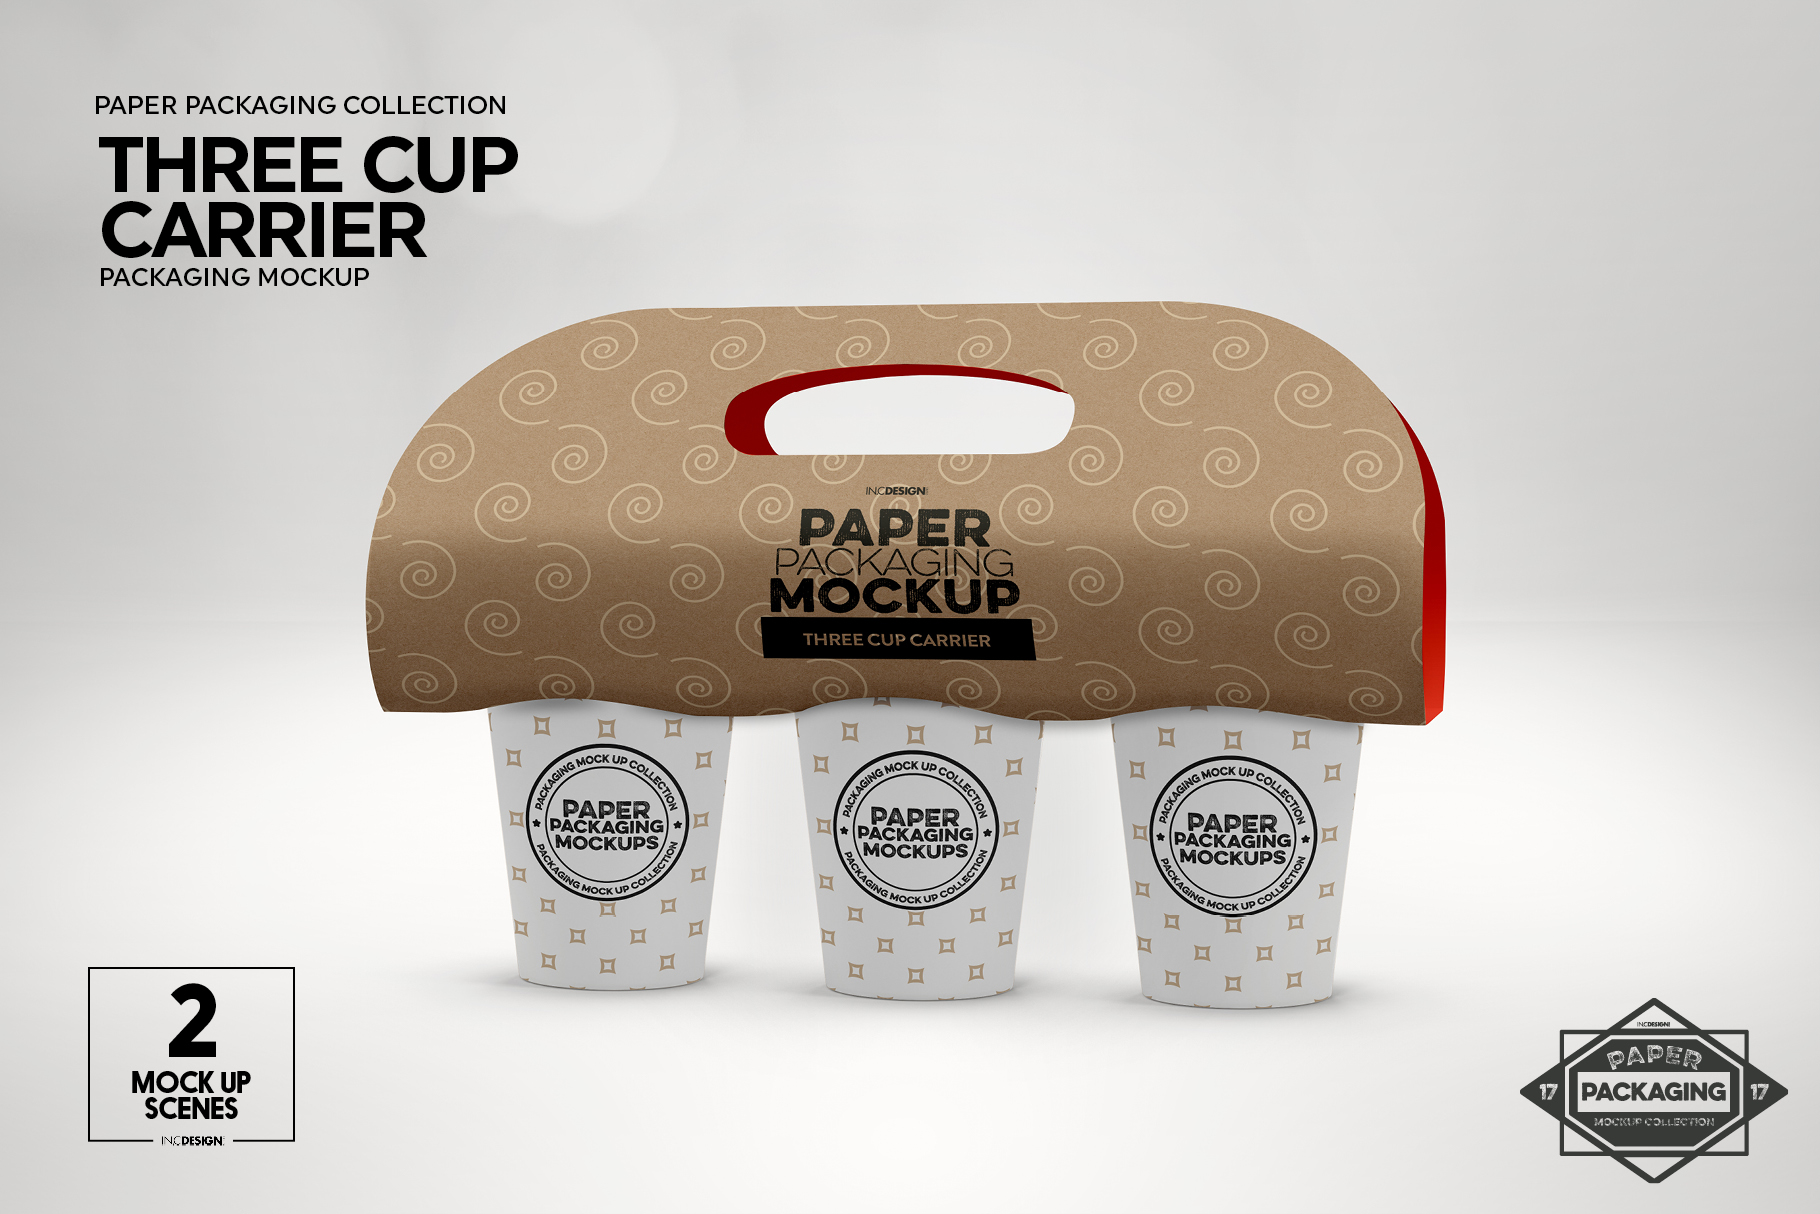 Three Cup Paper Carrier Packaging Mockup example image 9